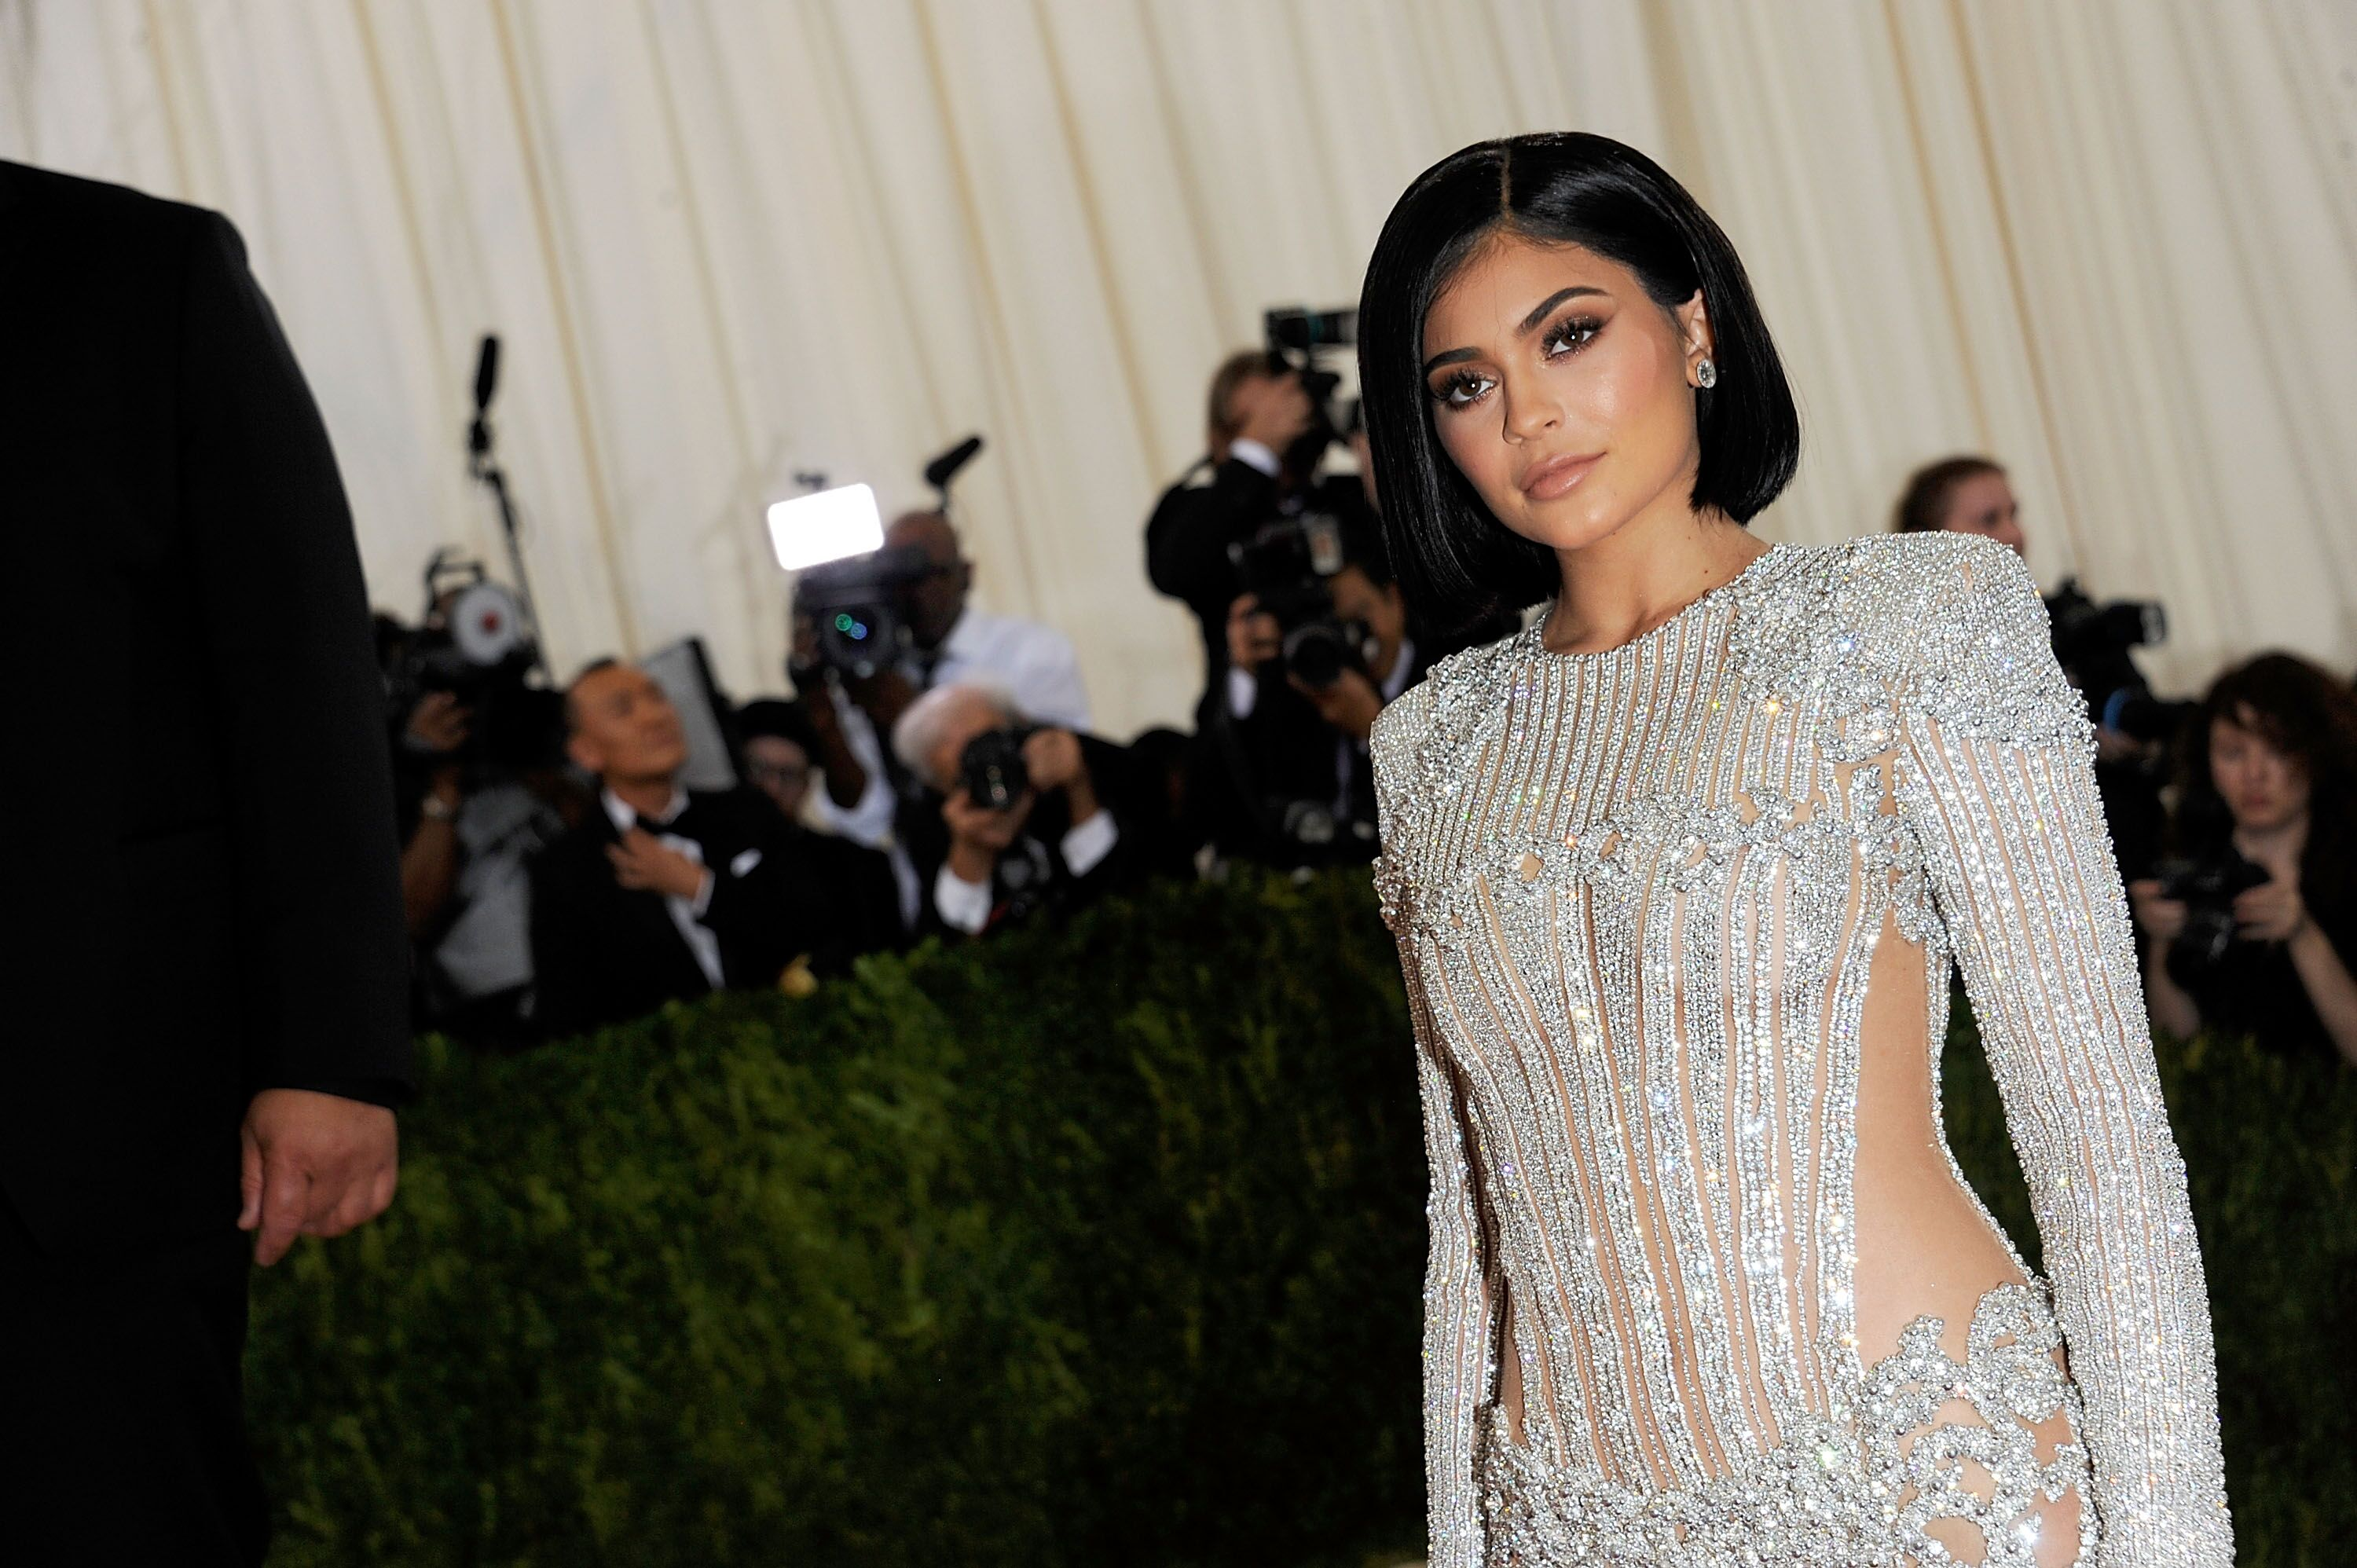 Kylie Jenner au Gala du Costume Institute | Photo : Rabbani et Solimene Photographie/Getty Images